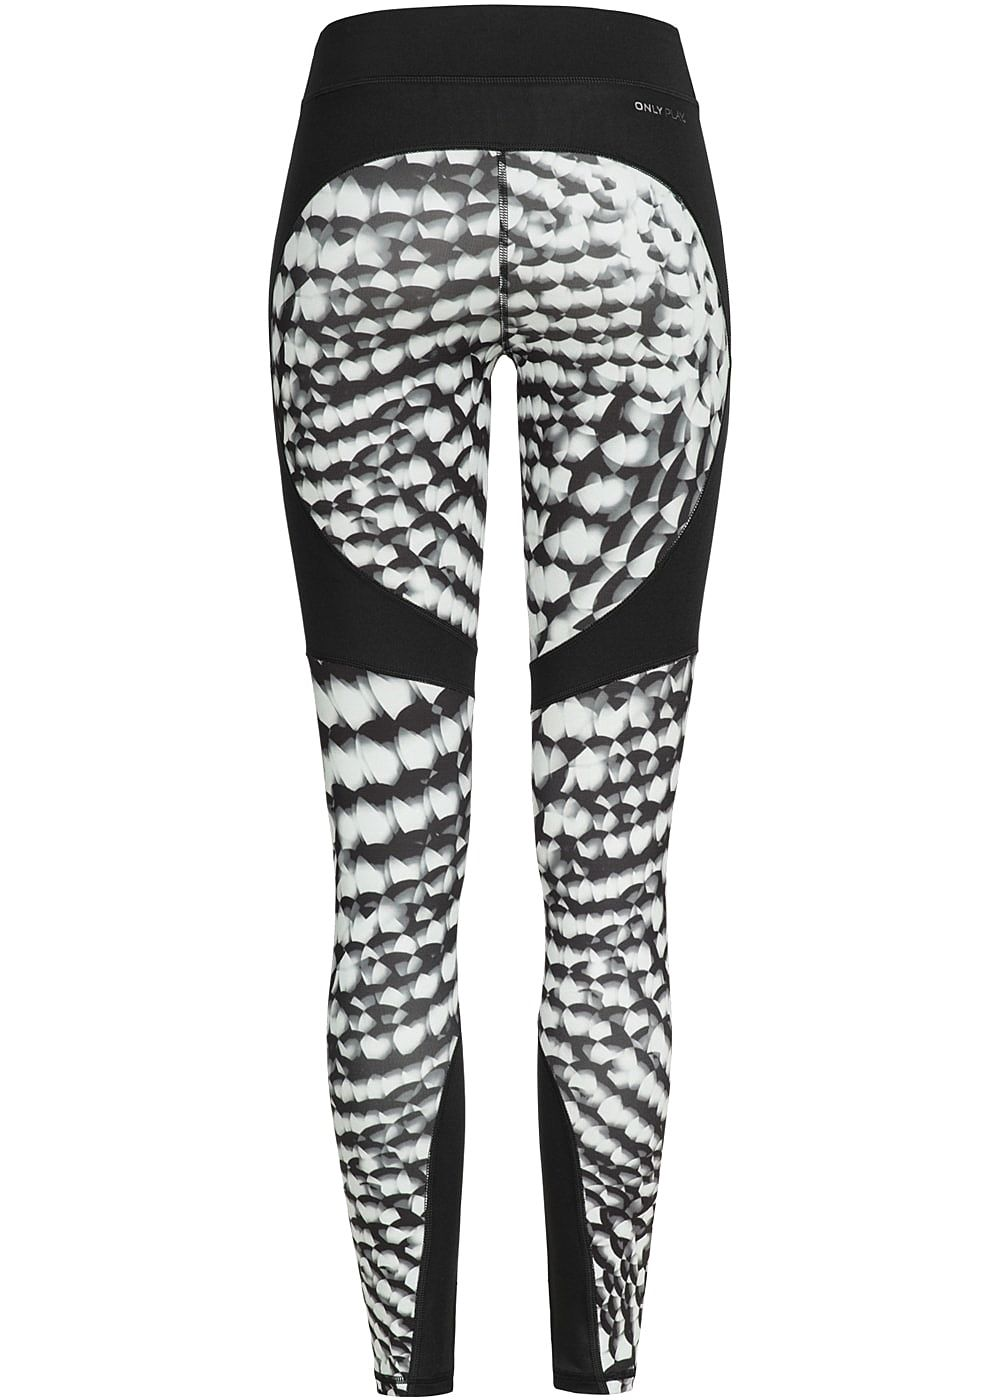 aff5190a930265 ONLY PLAY Damen Trainings Tights Leggings mit Print schwarz weiss ...